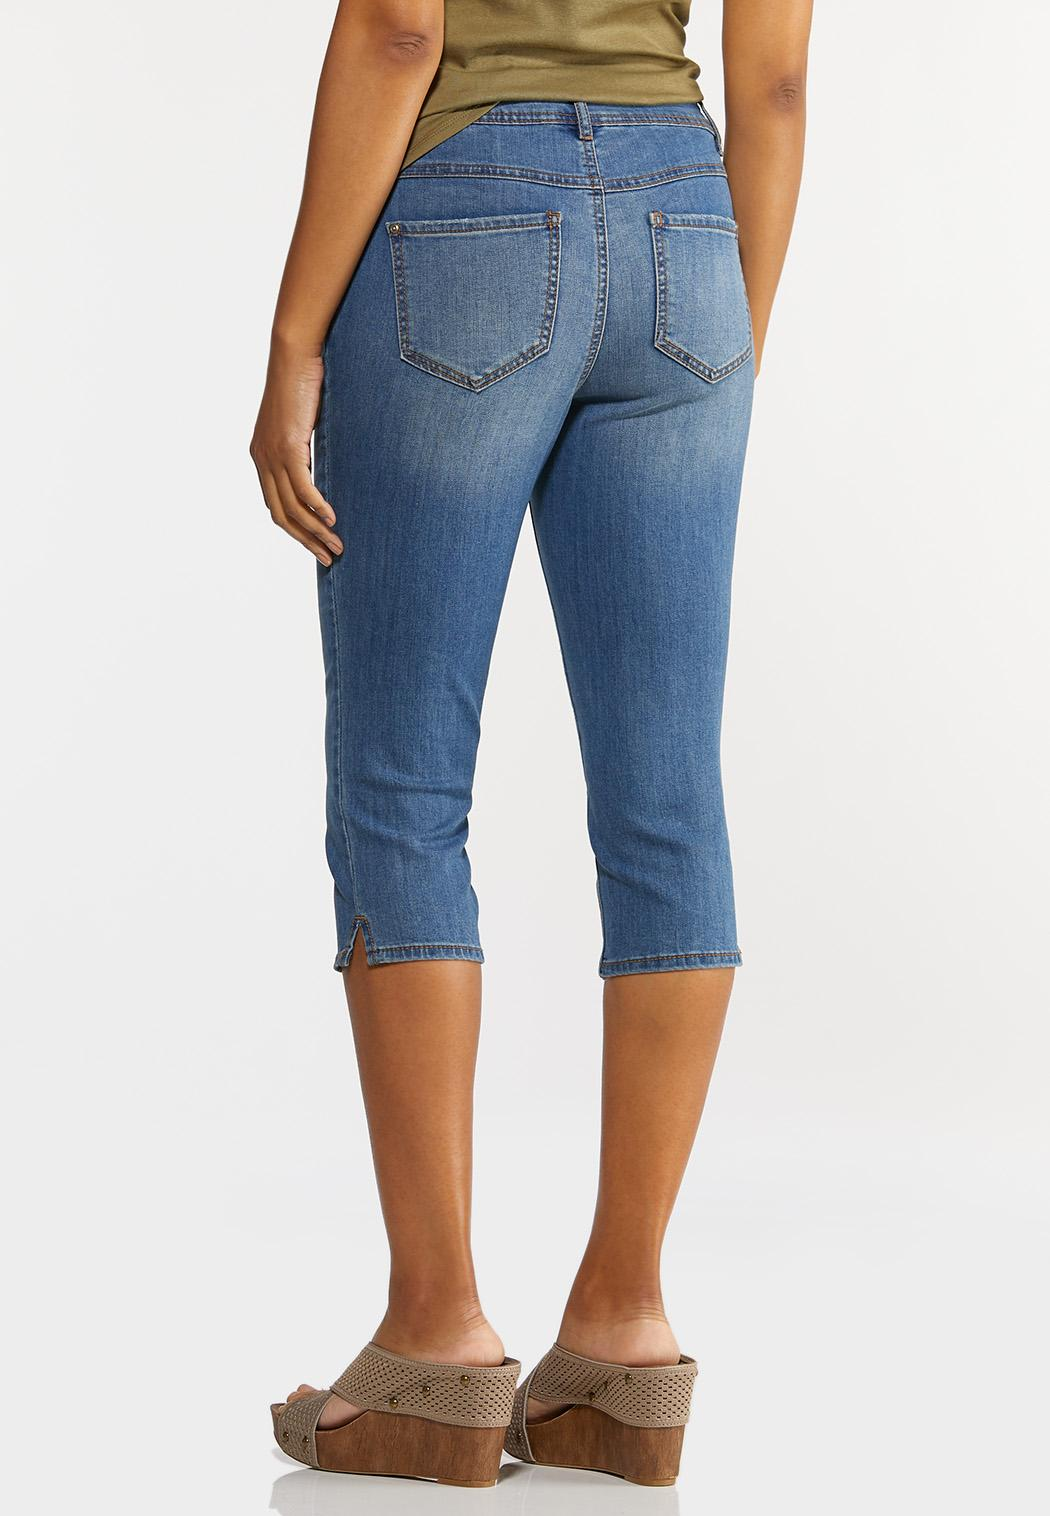 Cropped Skinny Jeans (Item #44240152)